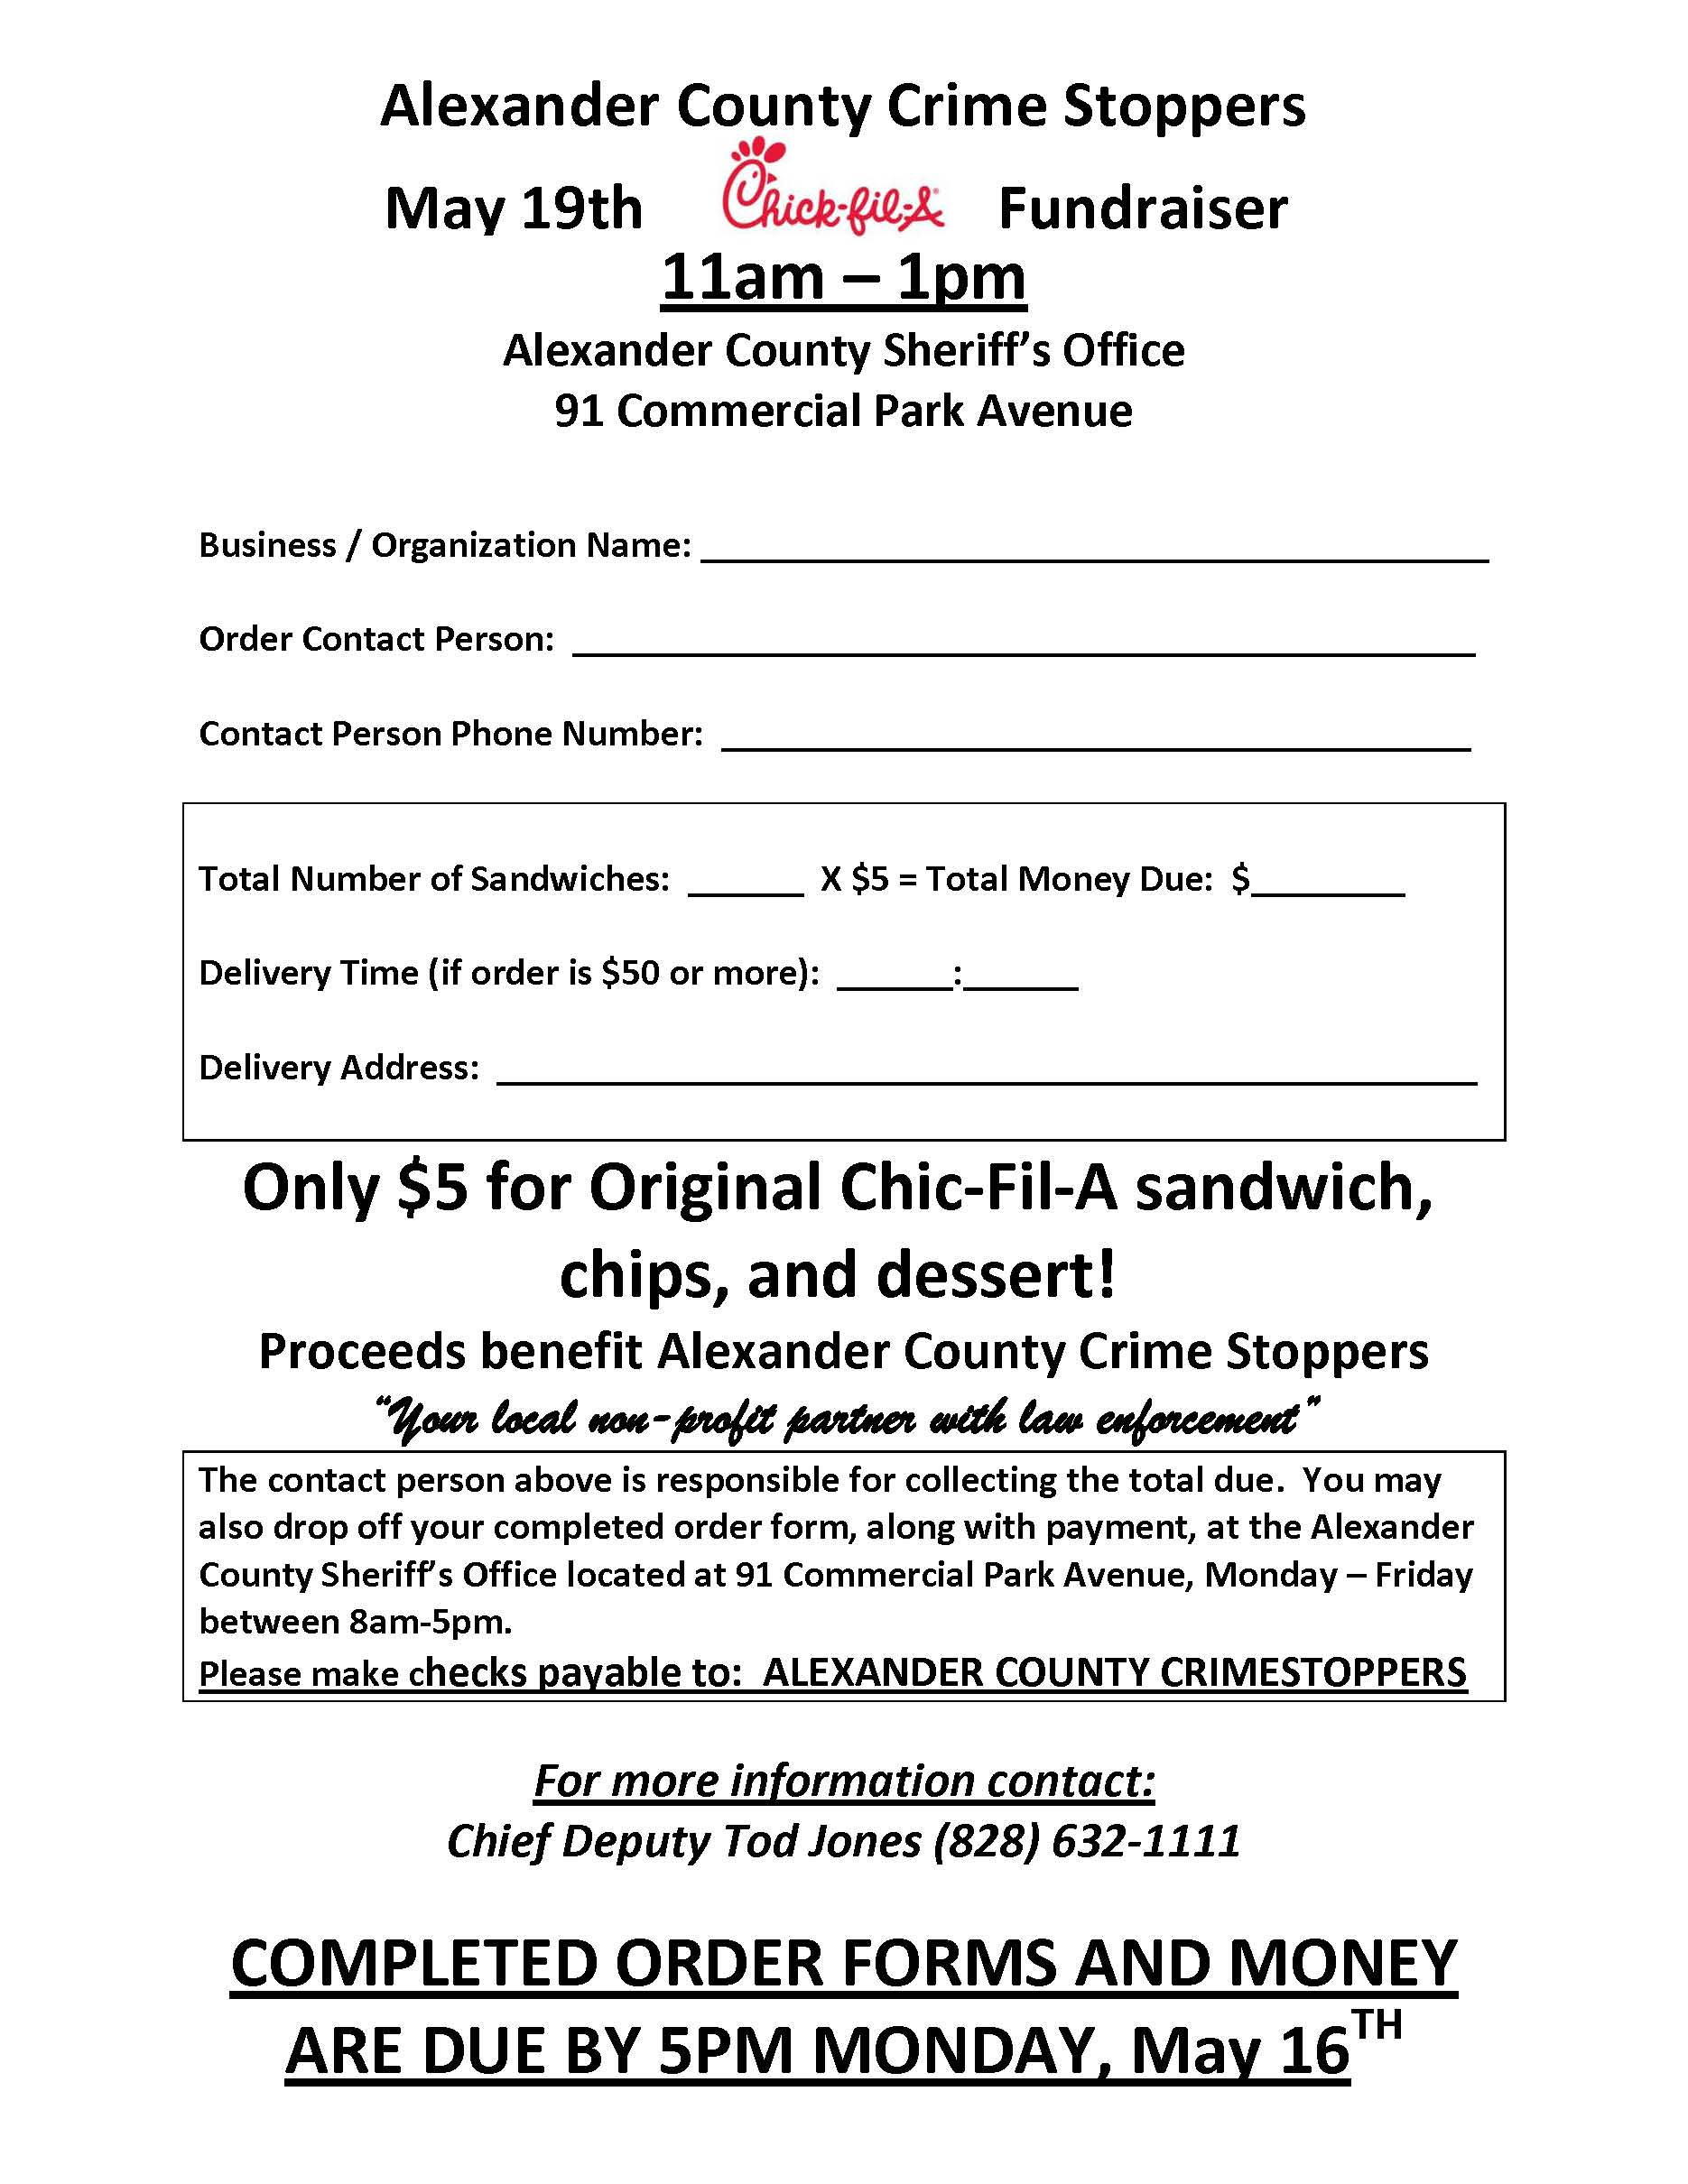 Chick Fil A Fundraiser Form Antaexpocoachingco - Chick fil a fundraiser flyer template